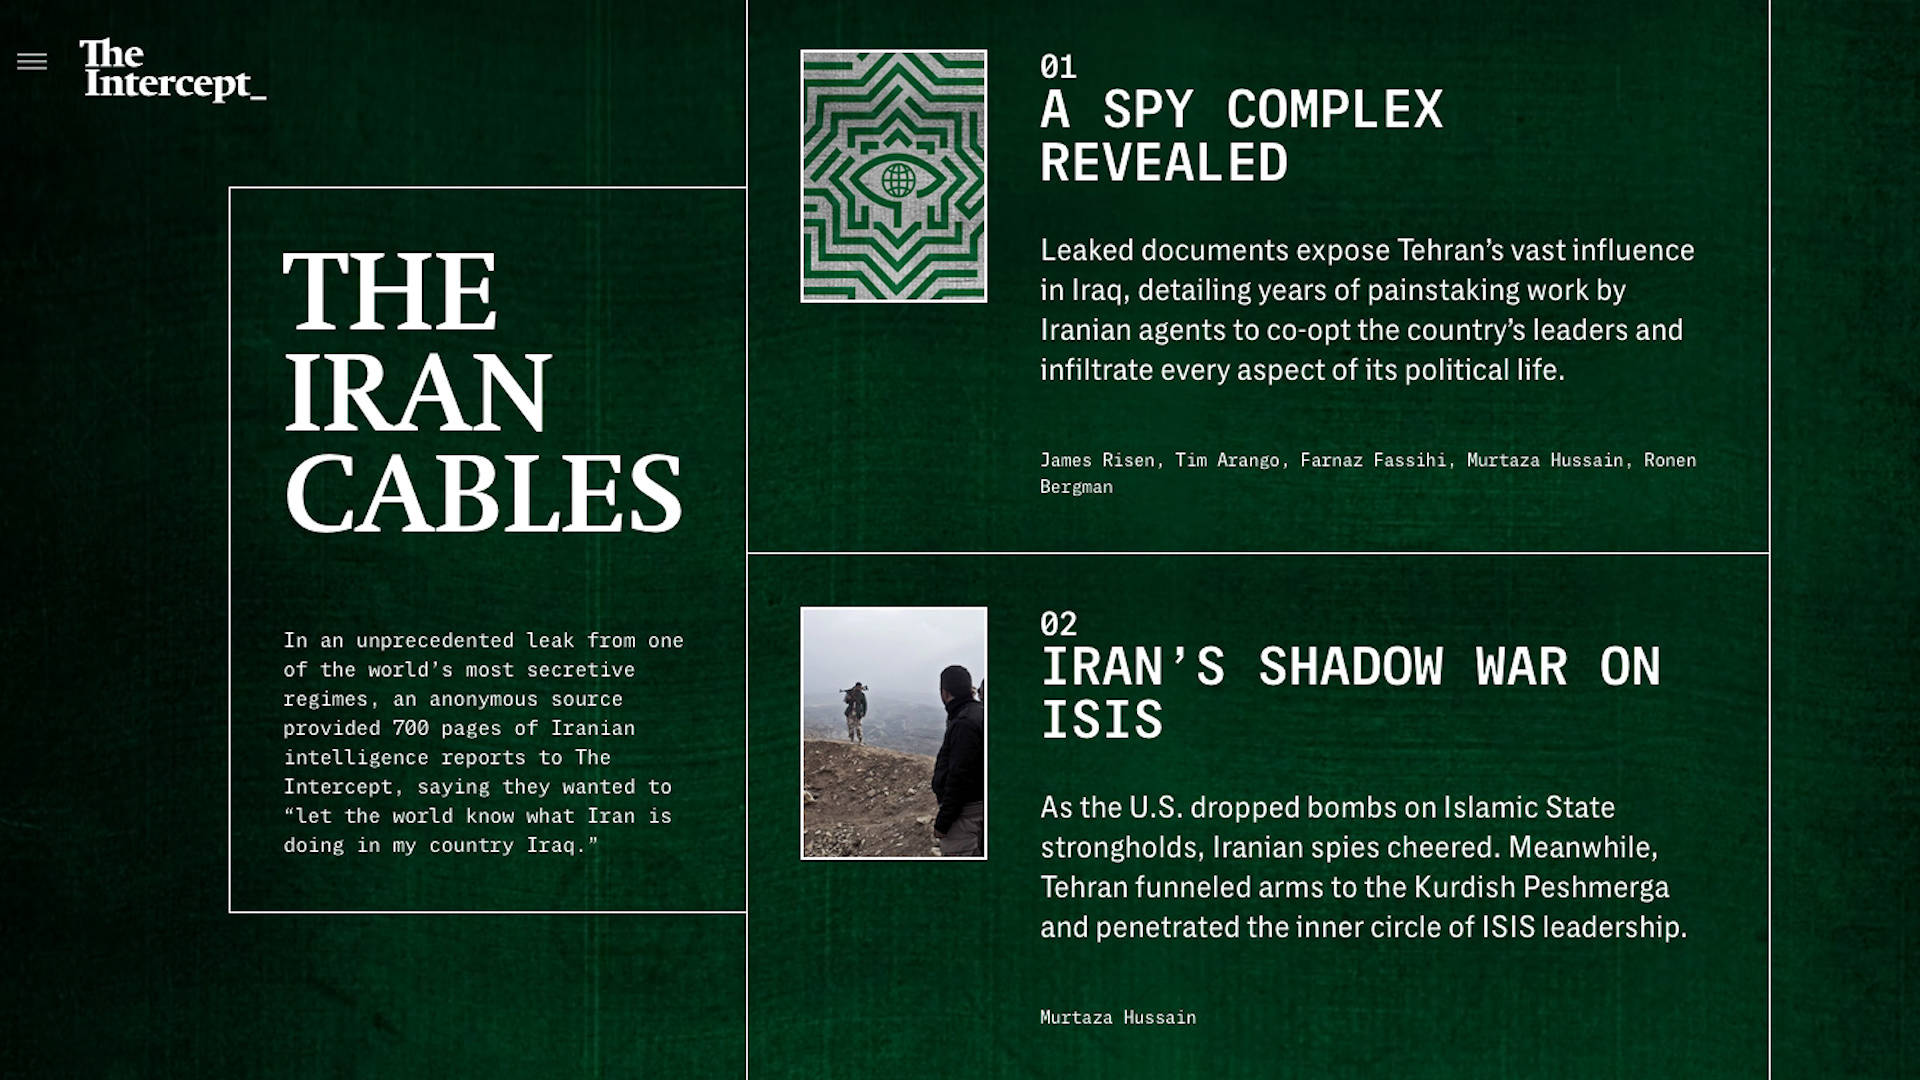 Iran wove an important network to try to influence Iraq's internal policy, according to leaked documents